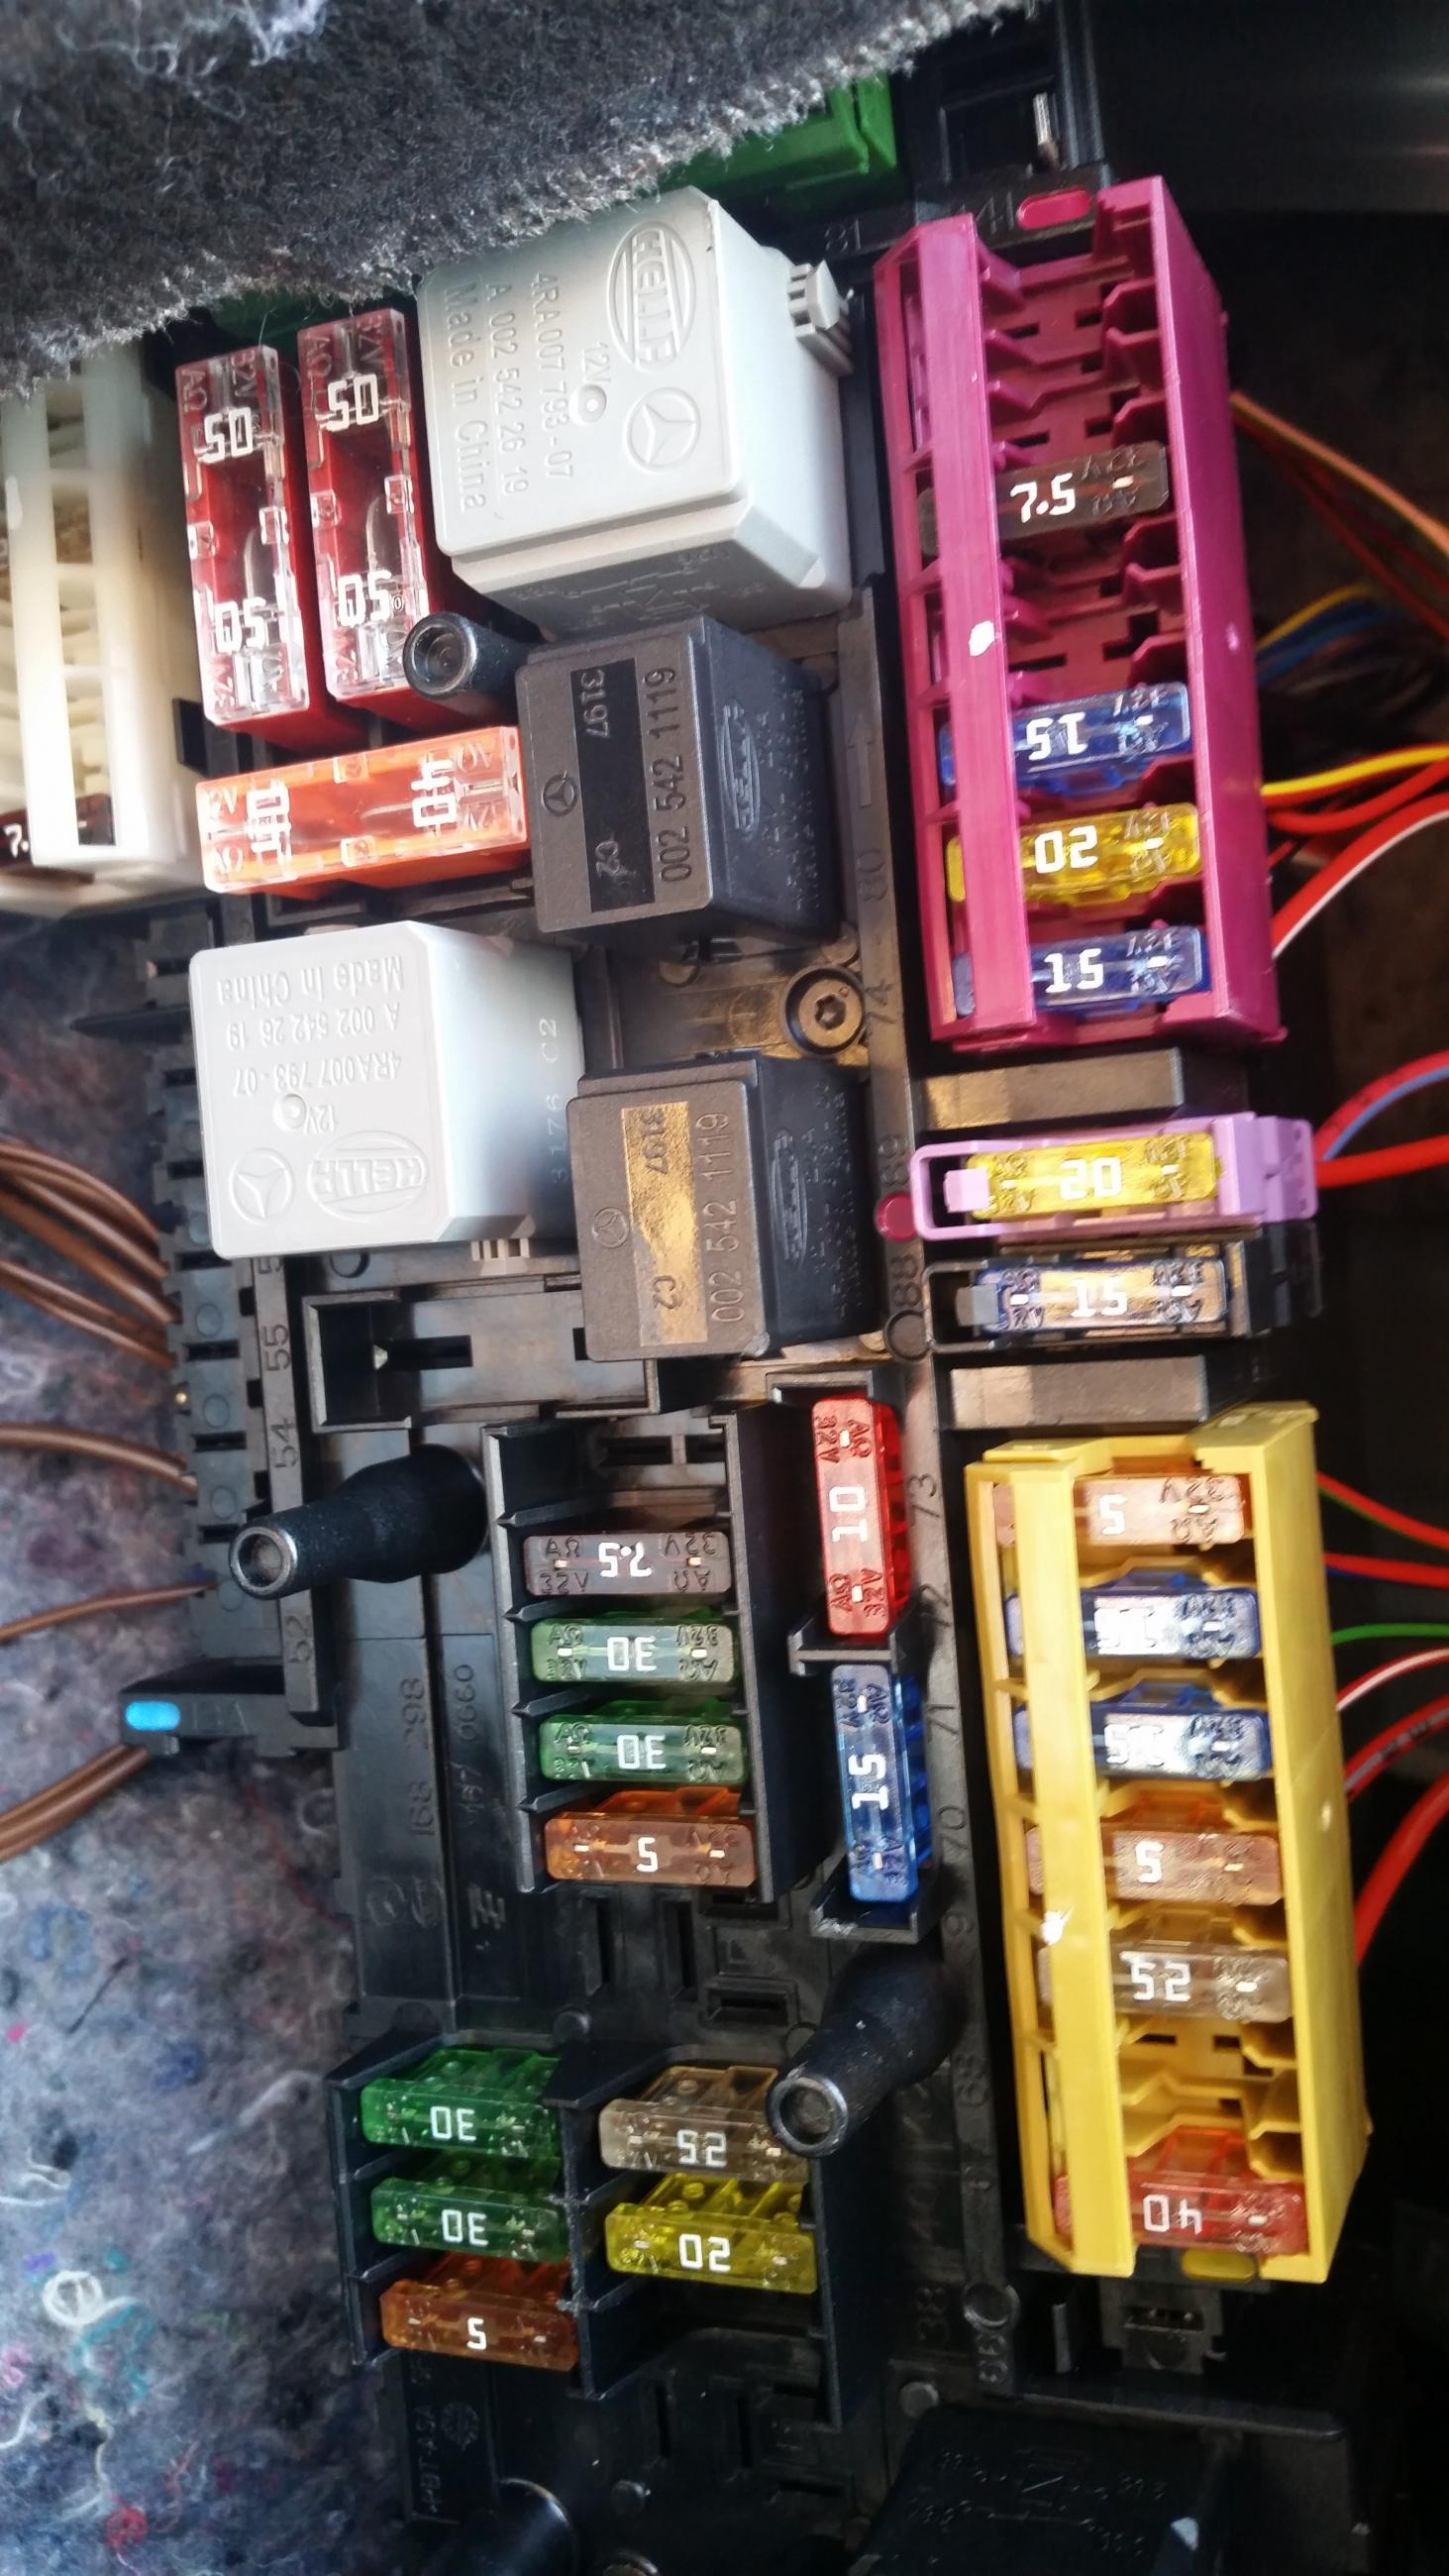 chevy 350 wiring diagram emg 3 way switch 2014 e350 fuse box diagram? - mbworld.org forums